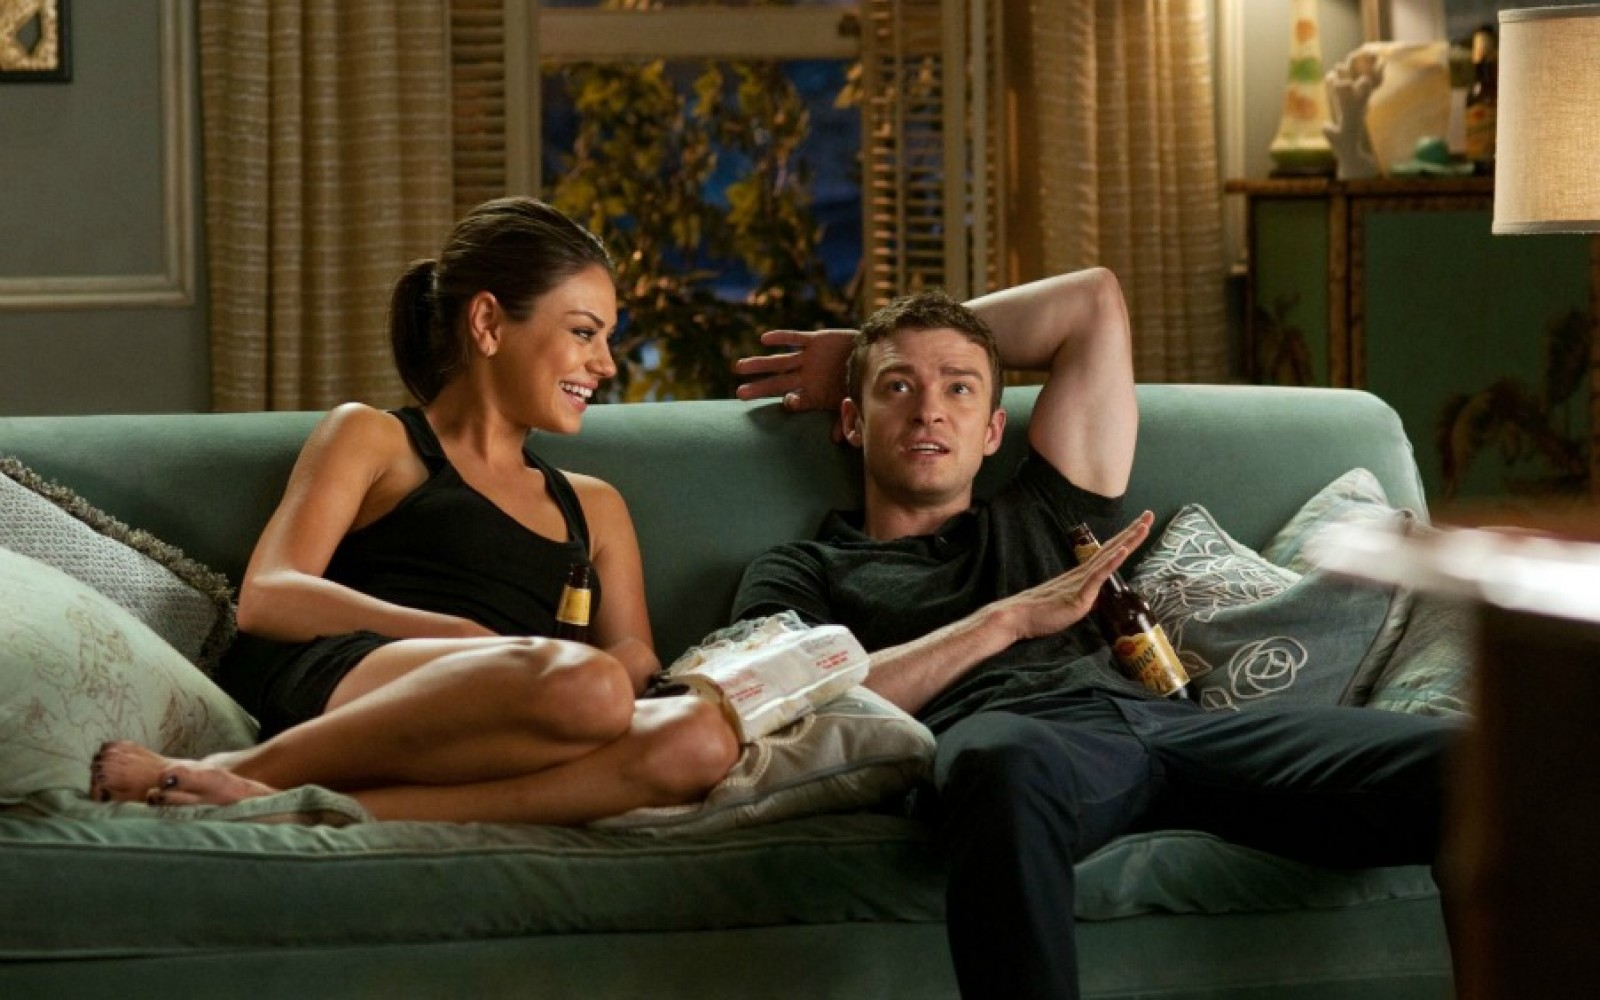 Falling In Love With Your Best Friend Quotes 22 Beautiful Quotes From Friends With Benefits About Falling In